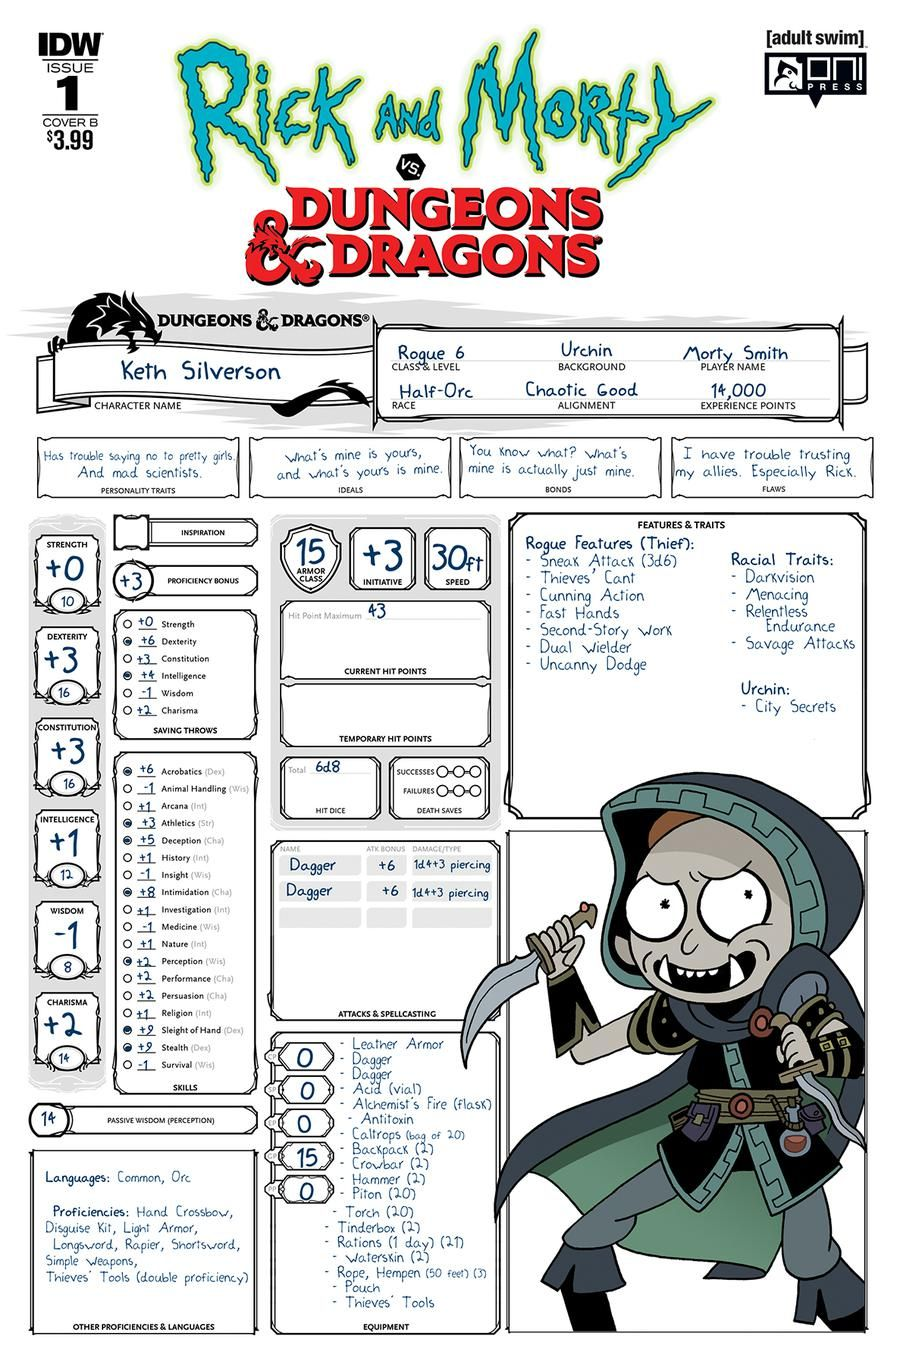 dungeons-and-dragons-rick-and-morty-d&d